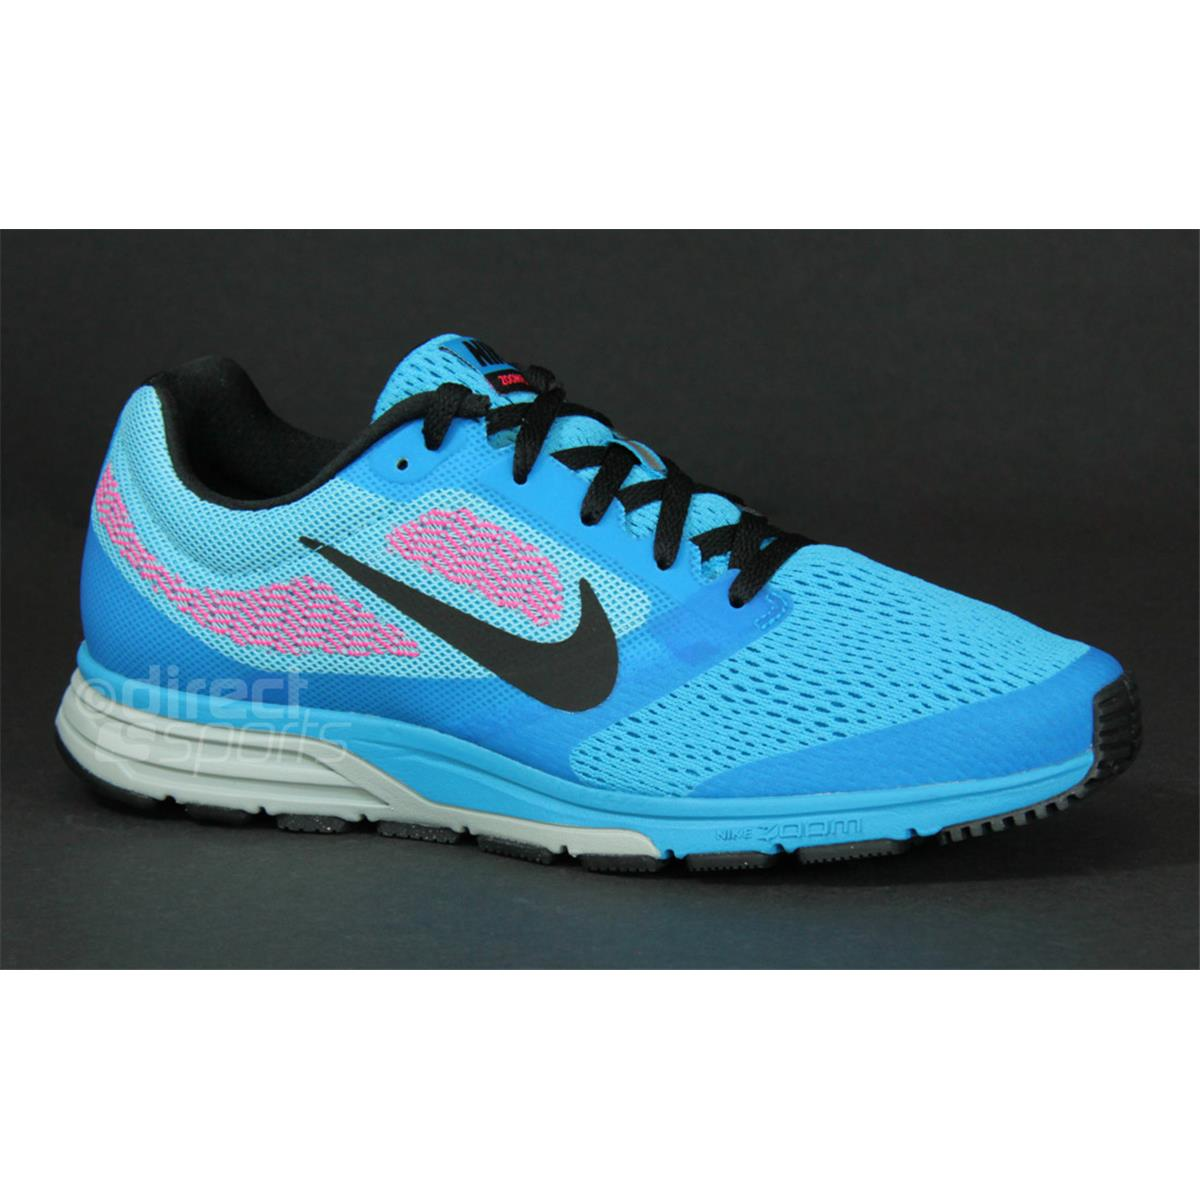 sneakers for cheap 1c9b1 03488 Nike Air Zoom Fly 2 Womens Running Shoes. Star Star Star Star Star. Be the  first to write a review. Image. Click to expand